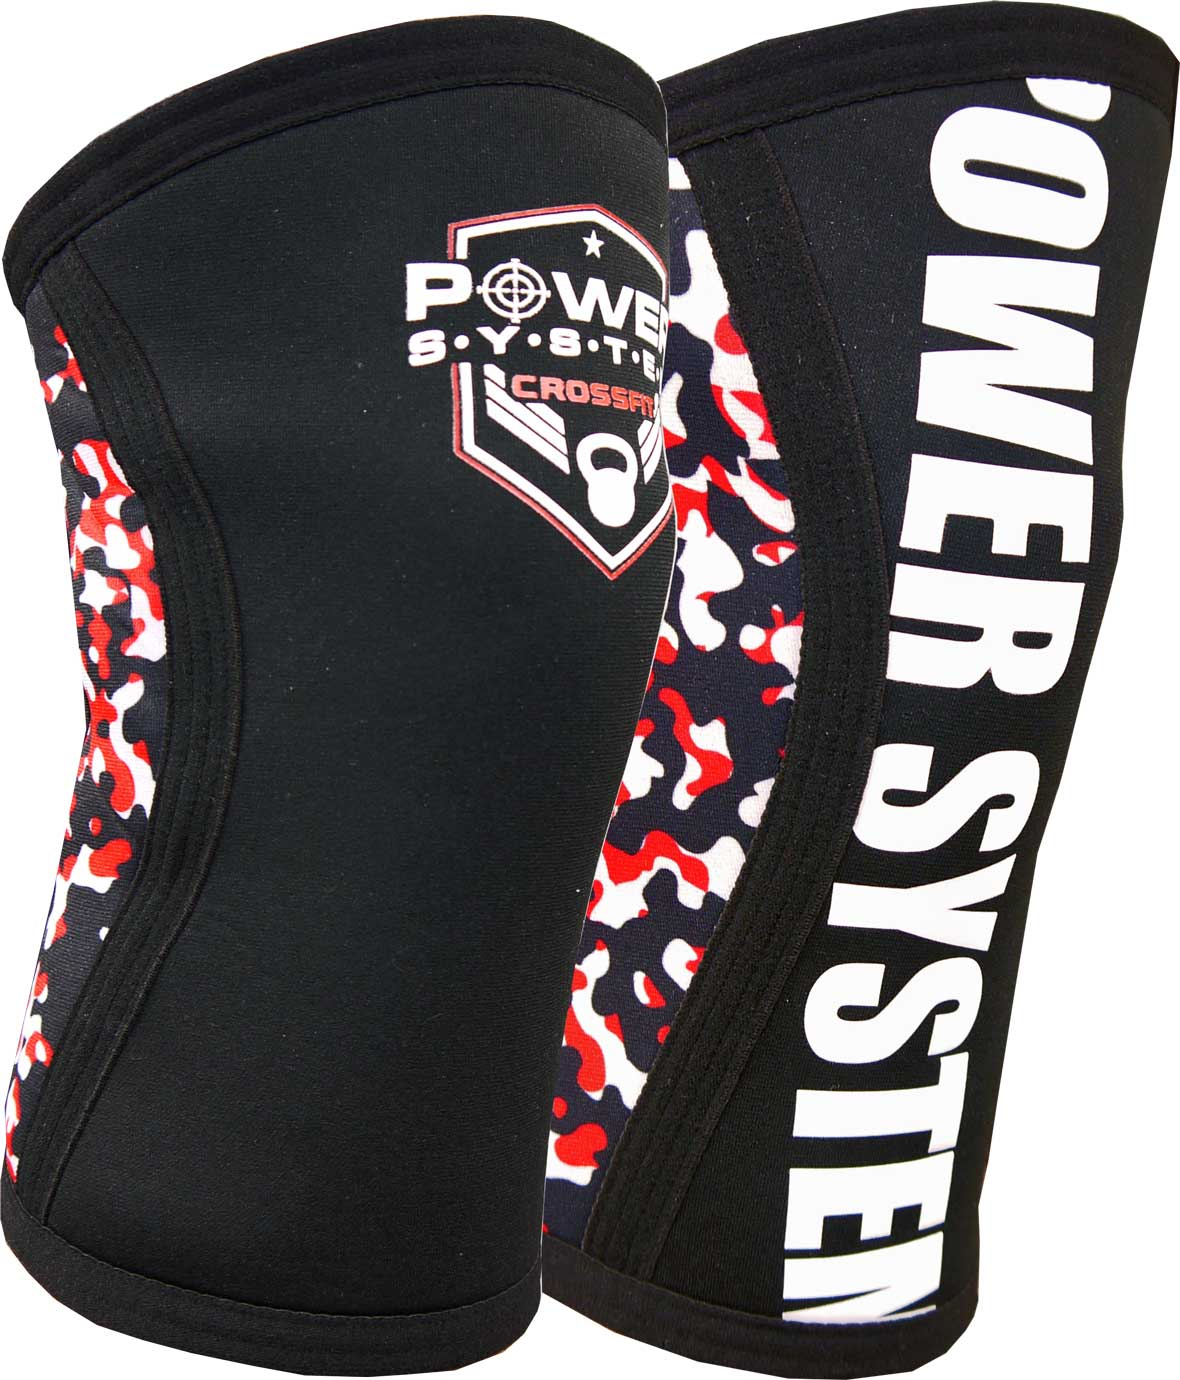 Power System kolenní bandáž KNEE SLEEVES vel.L/XL